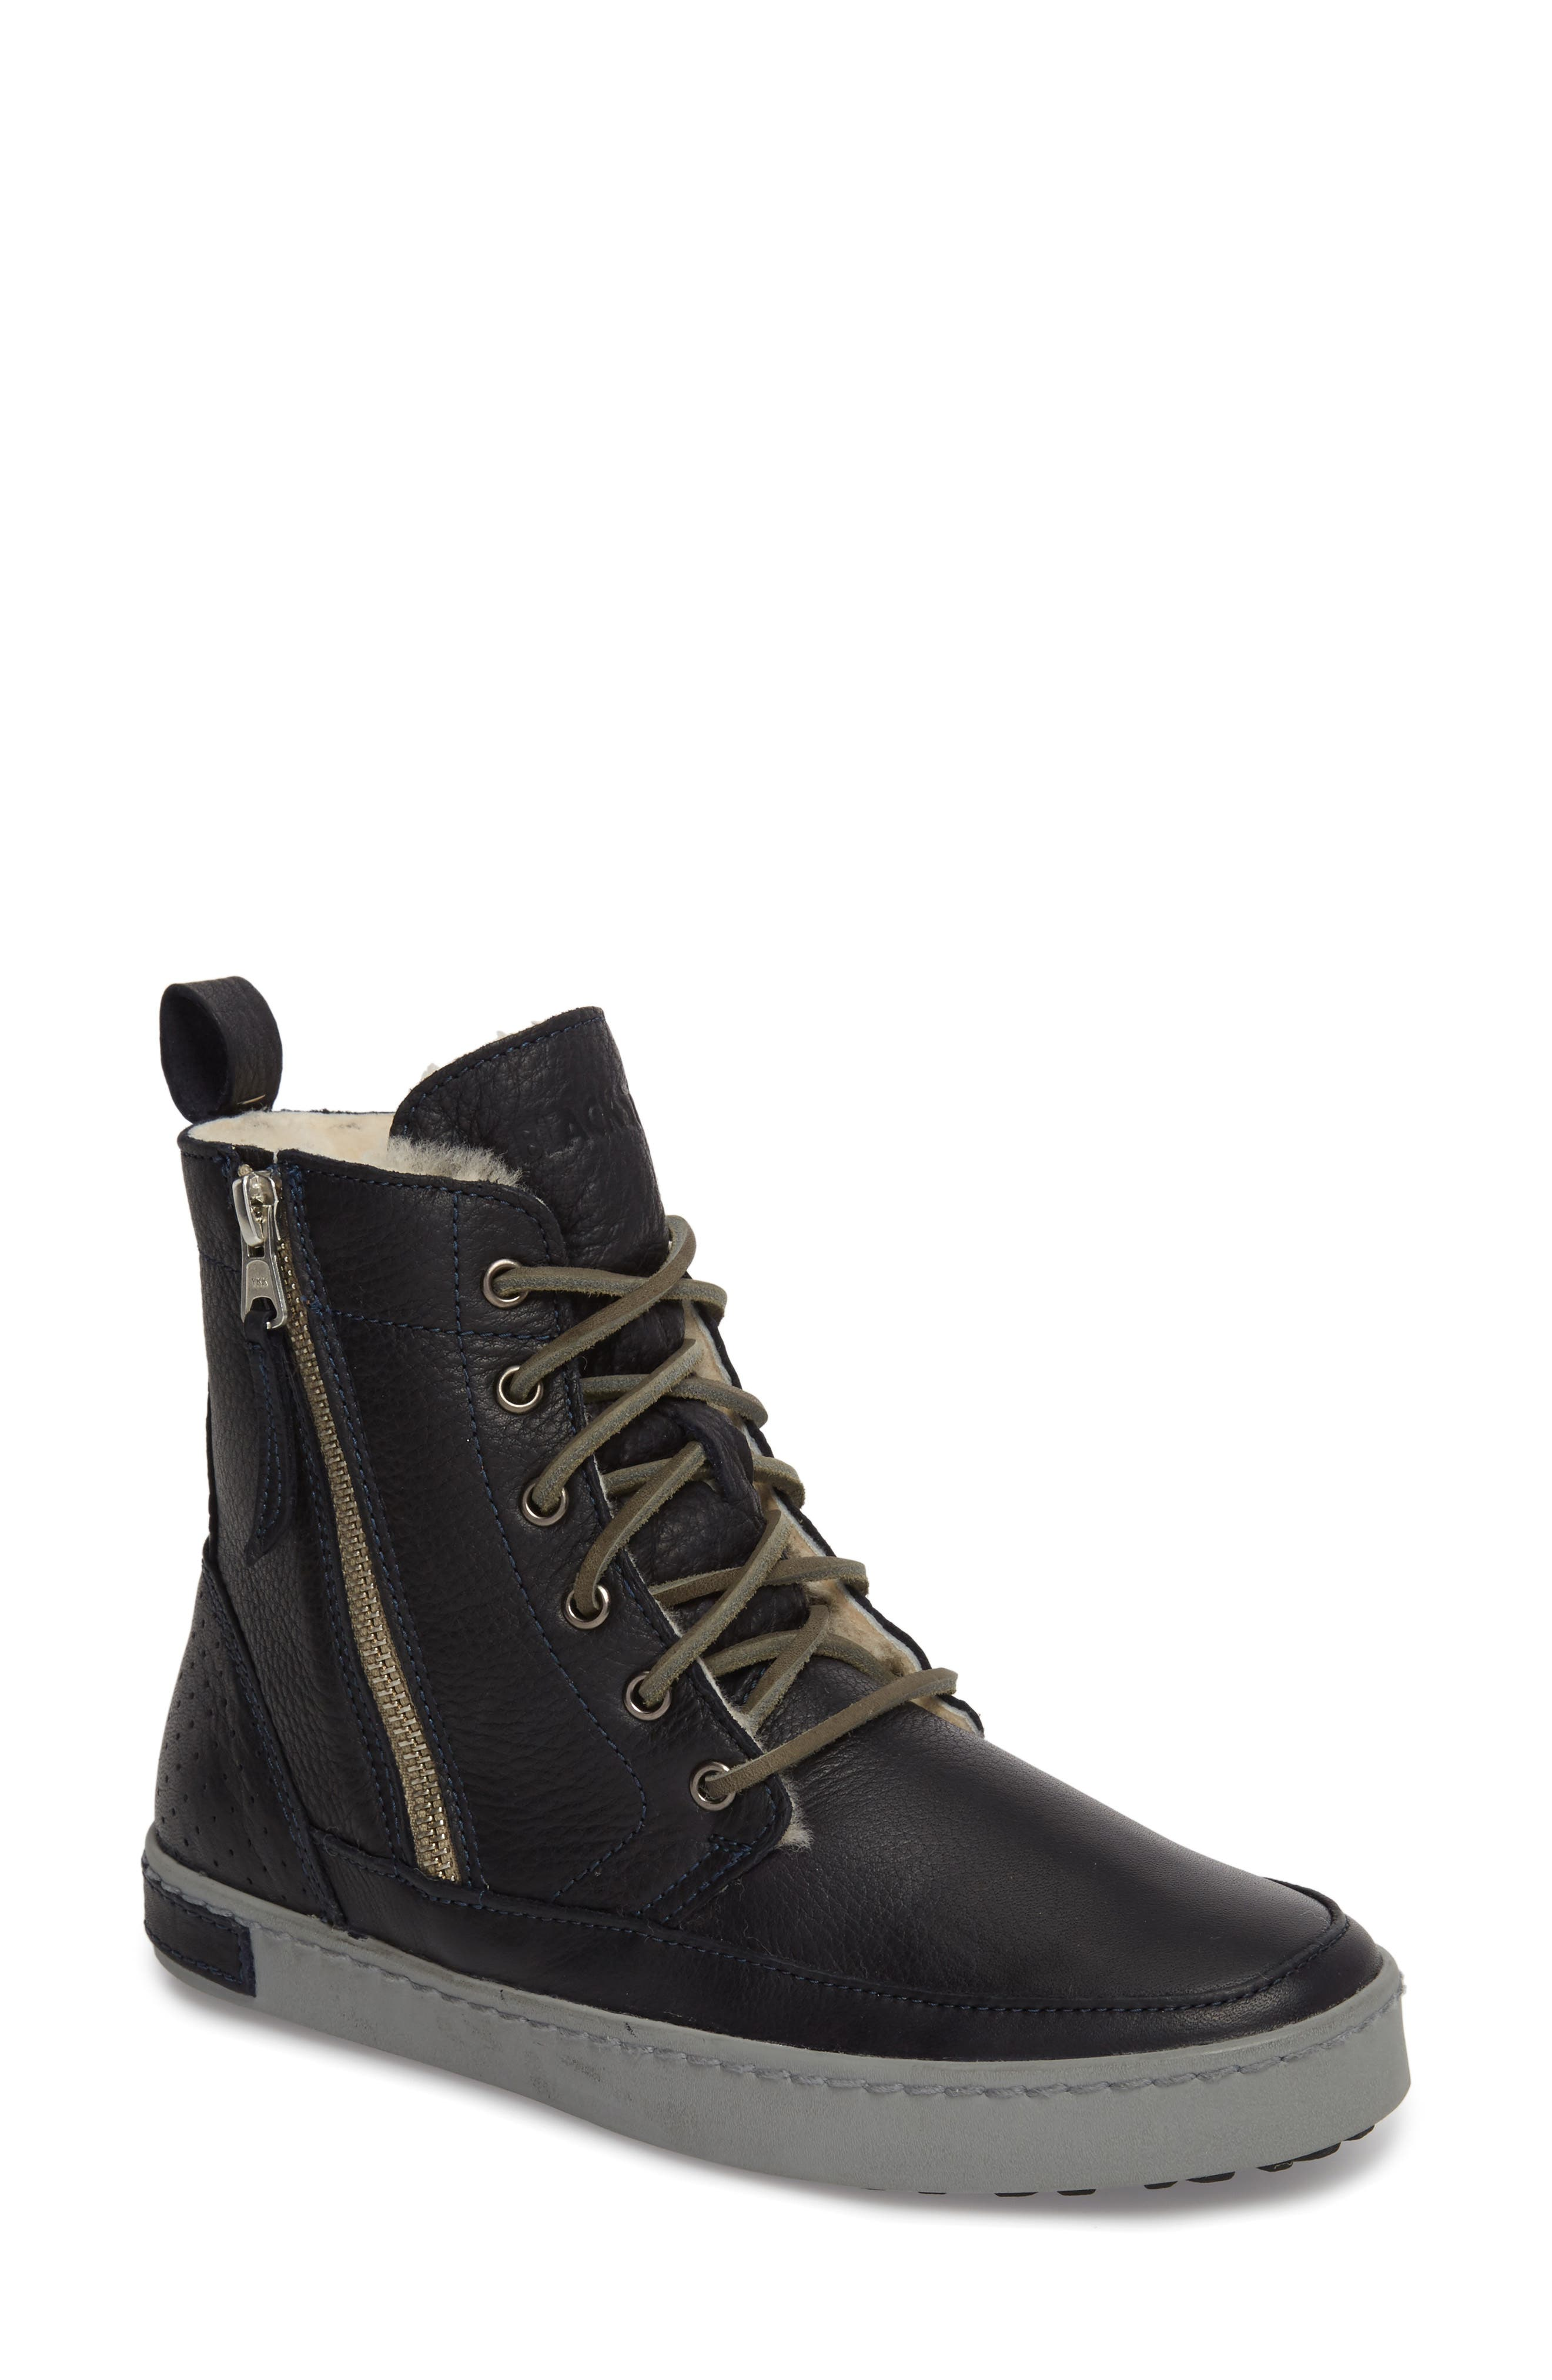 'CW96' Genuine Shearling Lined Sneaker Boot,                             Main thumbnail 1, color,                             Dark Indigo Leather